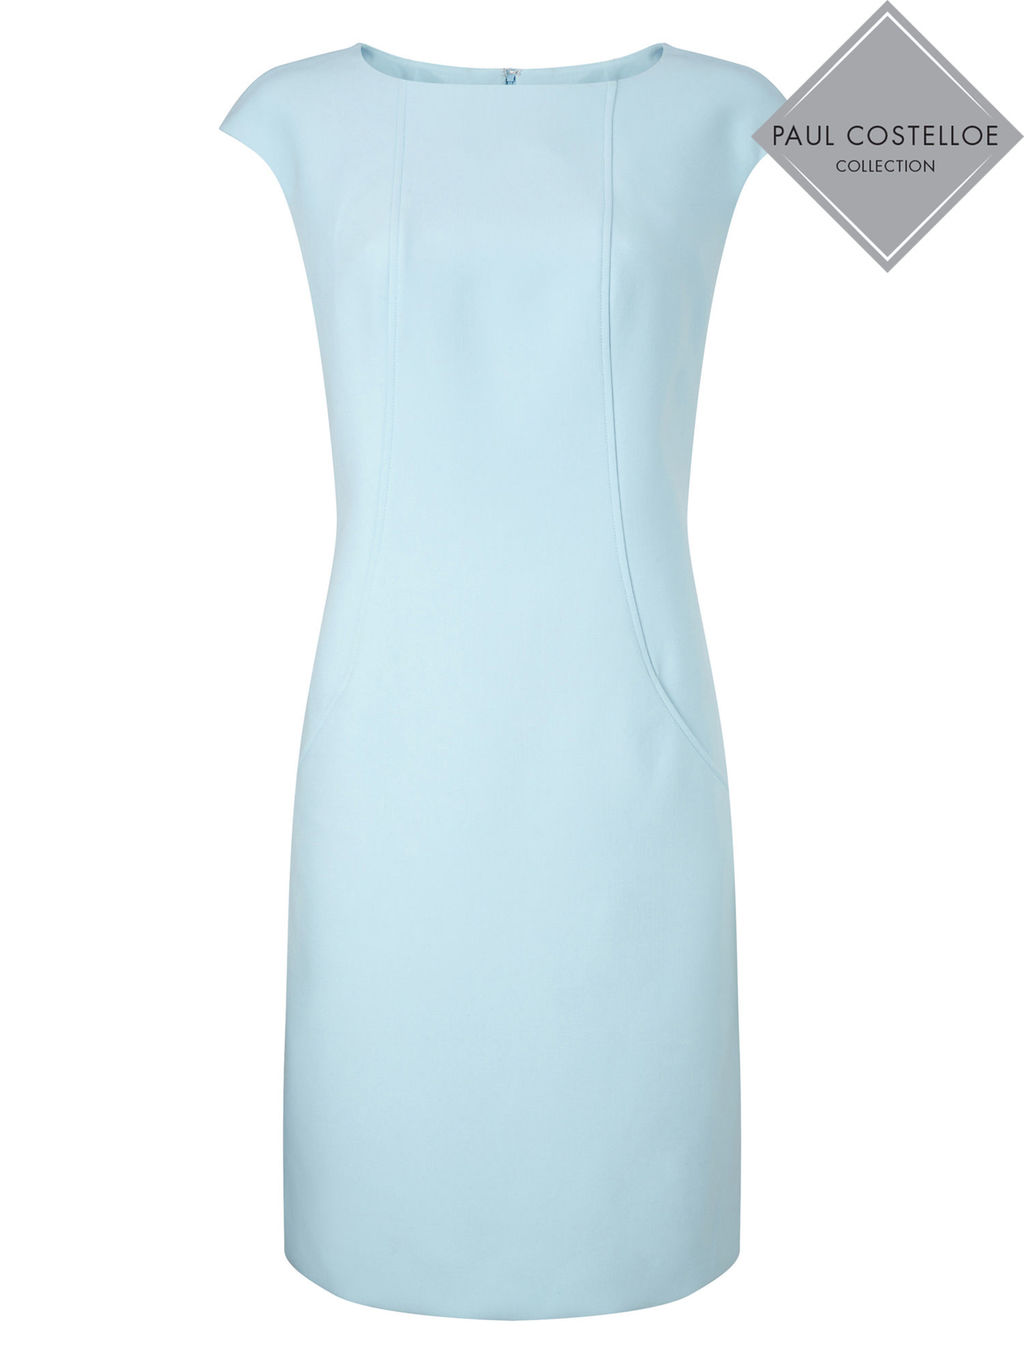 Paul Costelloe Kempton Dress - style: shift; sleeve style: capped; pattern: plain; predominant colour: pale blue; occasions: evening; length: on the knee; fit: body skimming; fibres: polyester/polyamide - stretch; neckline: crew; sleeve length: short sleeve; pattern type: fabric; texture group: jersey - stretchy/drapey; season: s/s 2016